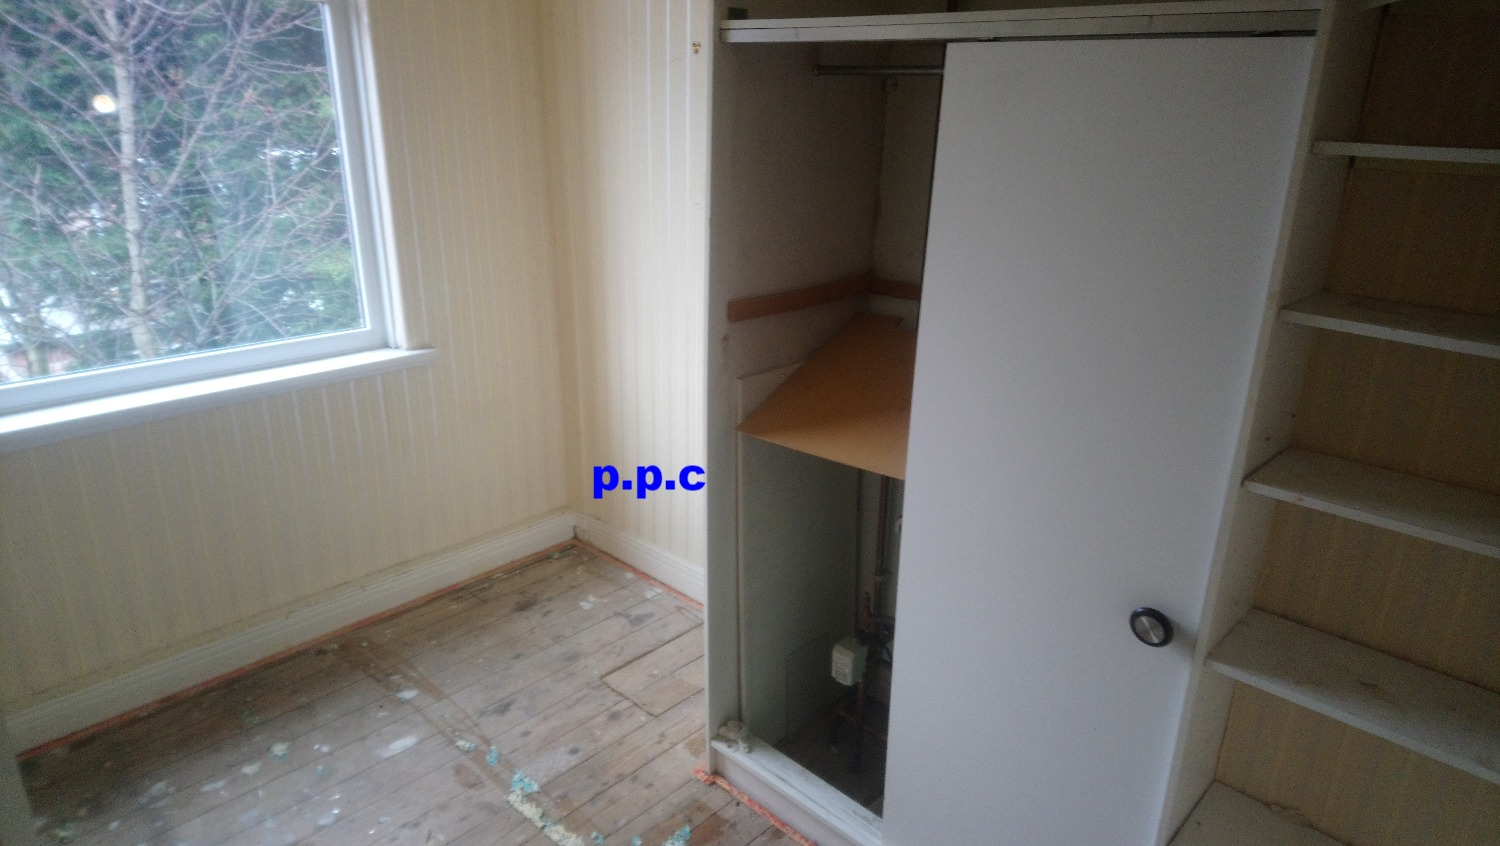 House clearance in fulwell pic 18